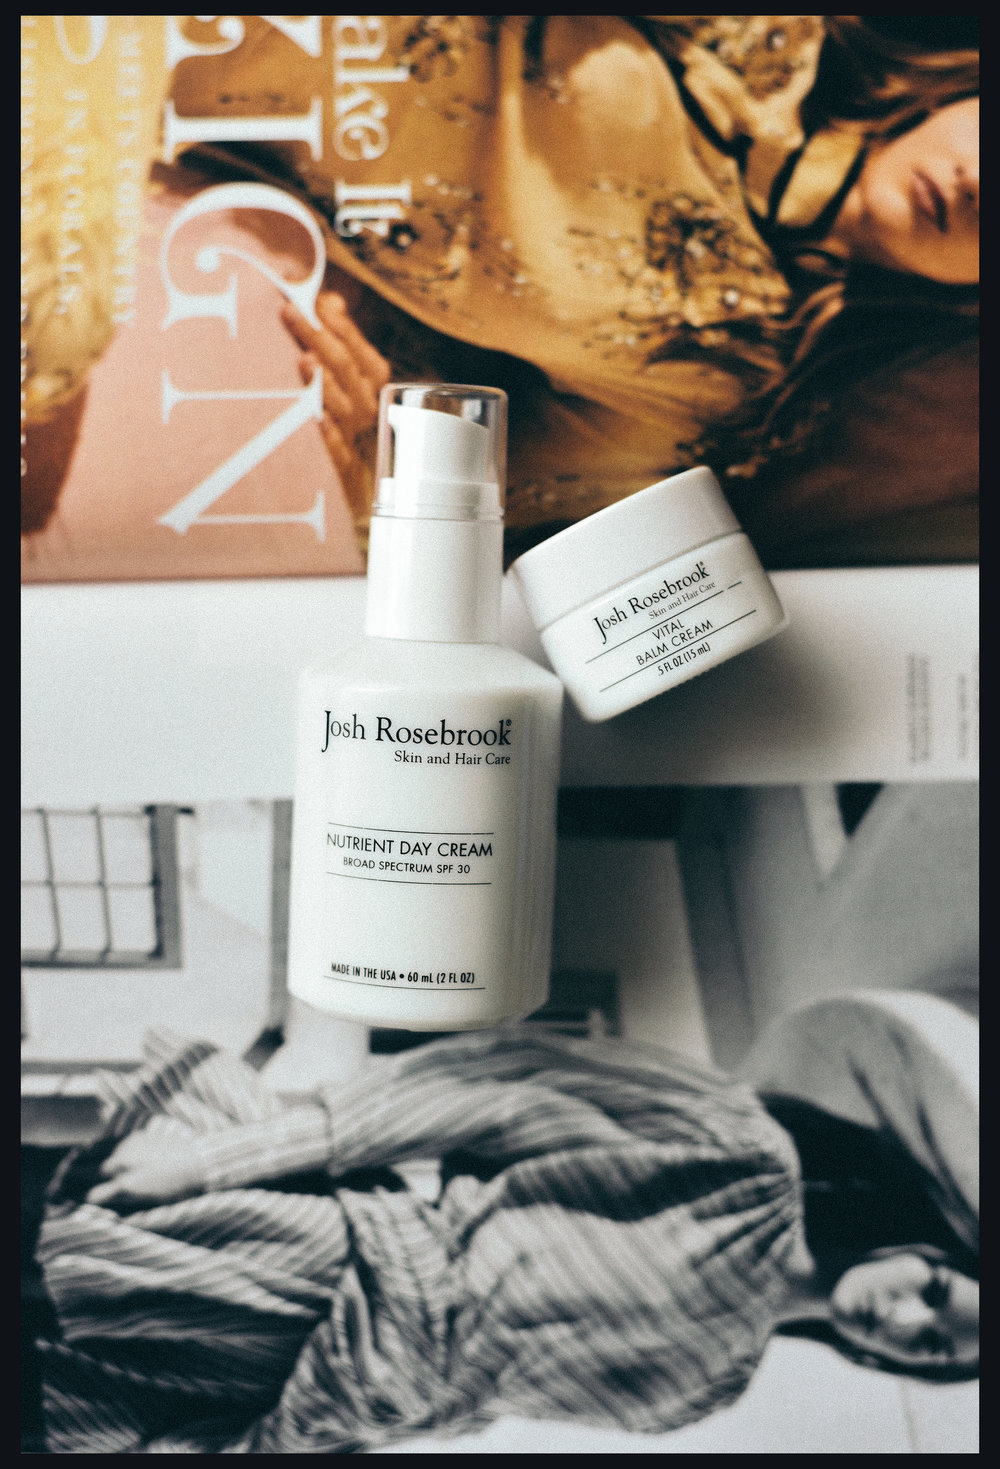 Beauty Heroes July Box, Josh Rosebrook's Nutrient Day Cream & Vital Balm Cream